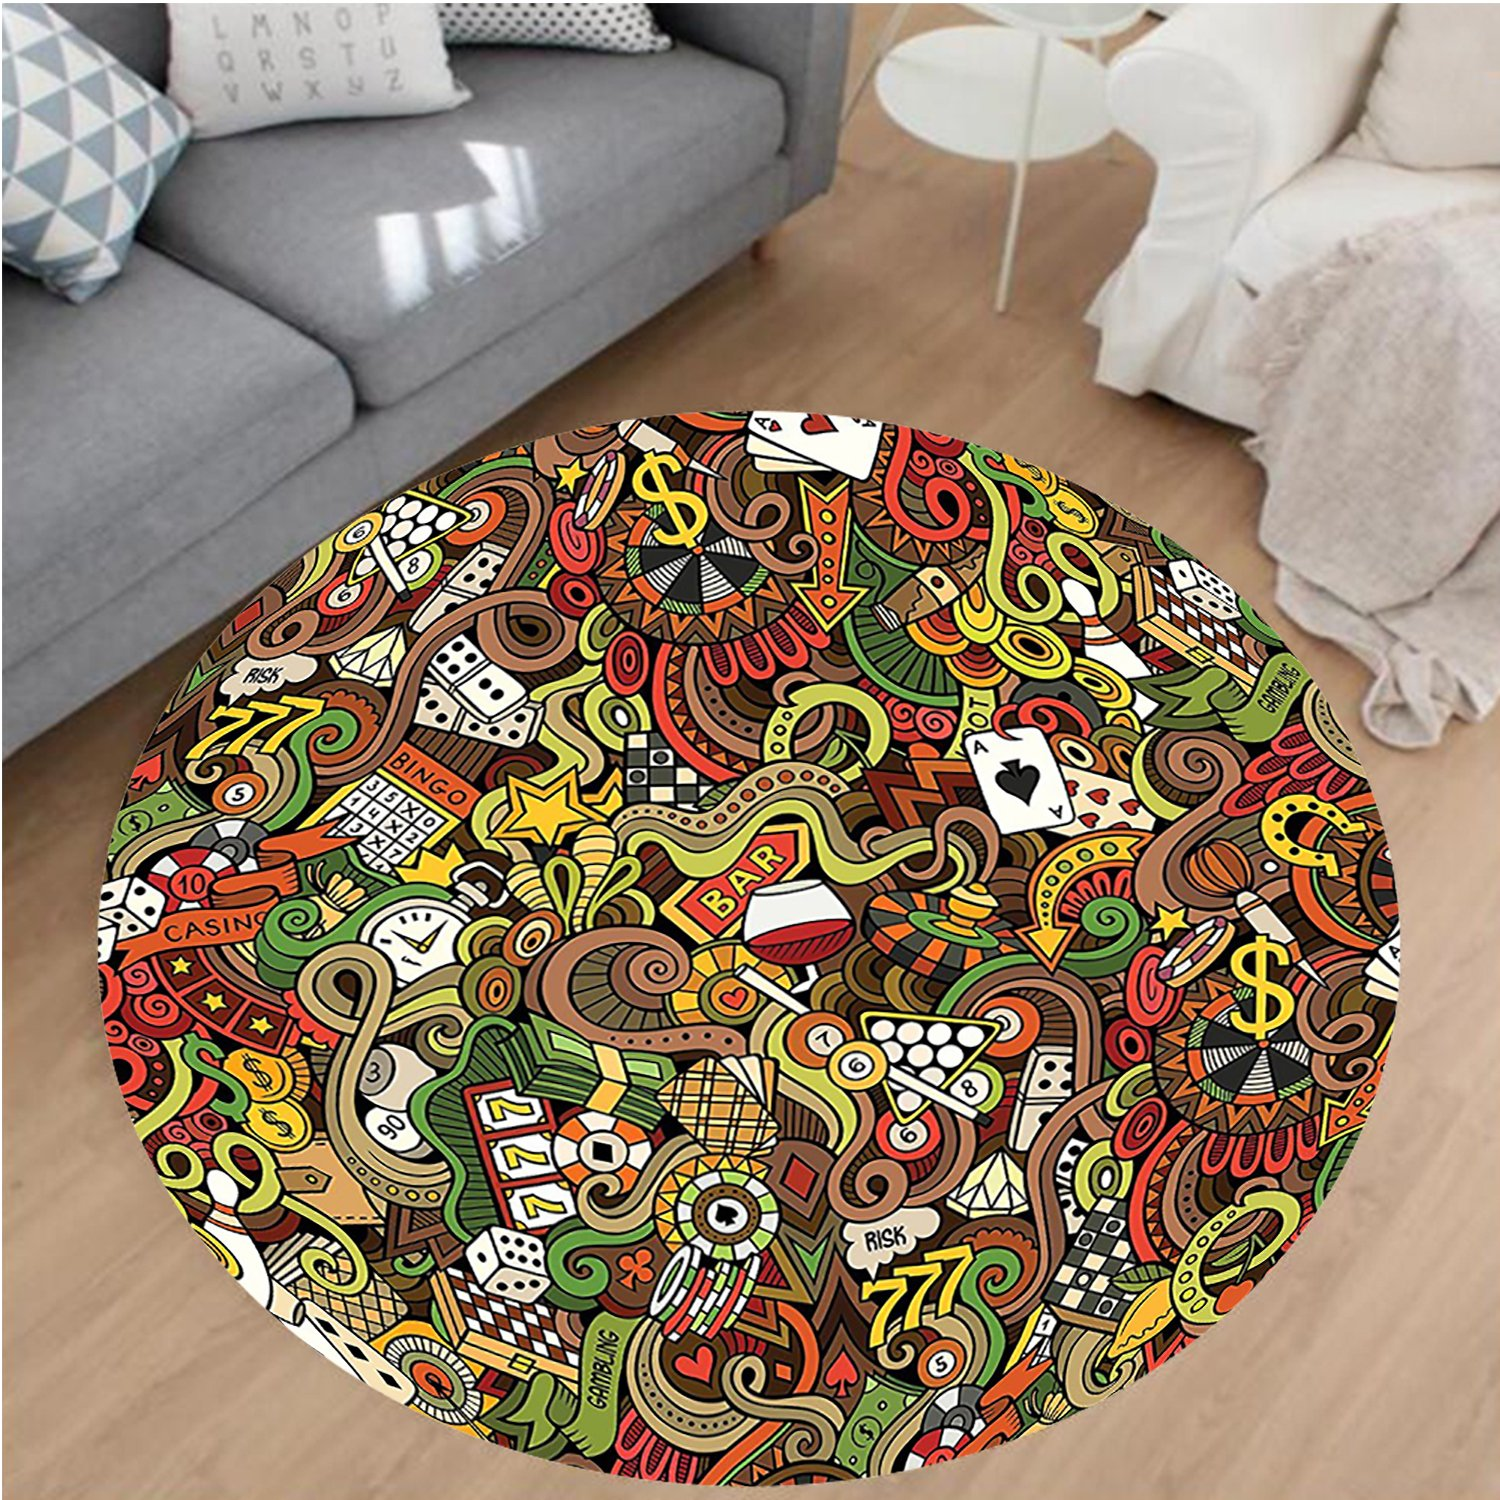 Nalahome Modern Flannel Microfiber Non-Slip Machine Washable Round Area Rug-Casino Decorations Doodles Style Art Bingo Excitement Checkers King Tambourine Vegas area rugs Home Decor-Round 79'' by Nalahome